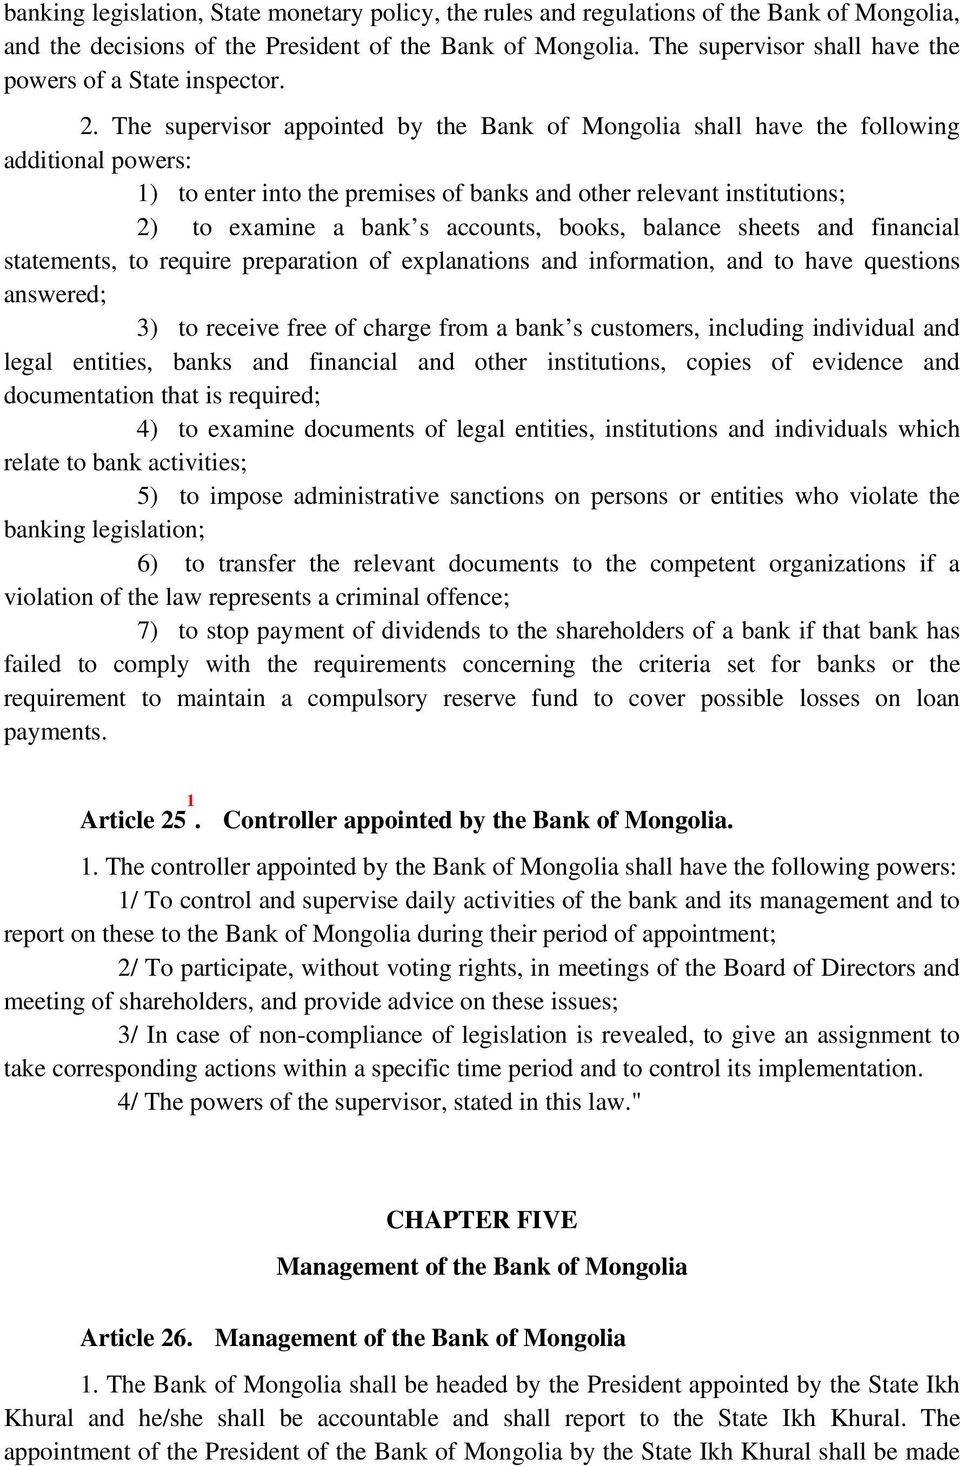 The supervisor appointed by the Bank of Mongolia shall have the following additional powers: 1) to enter into the premises of banks and other relevant institutions; 2) to examine a bank s accounts,